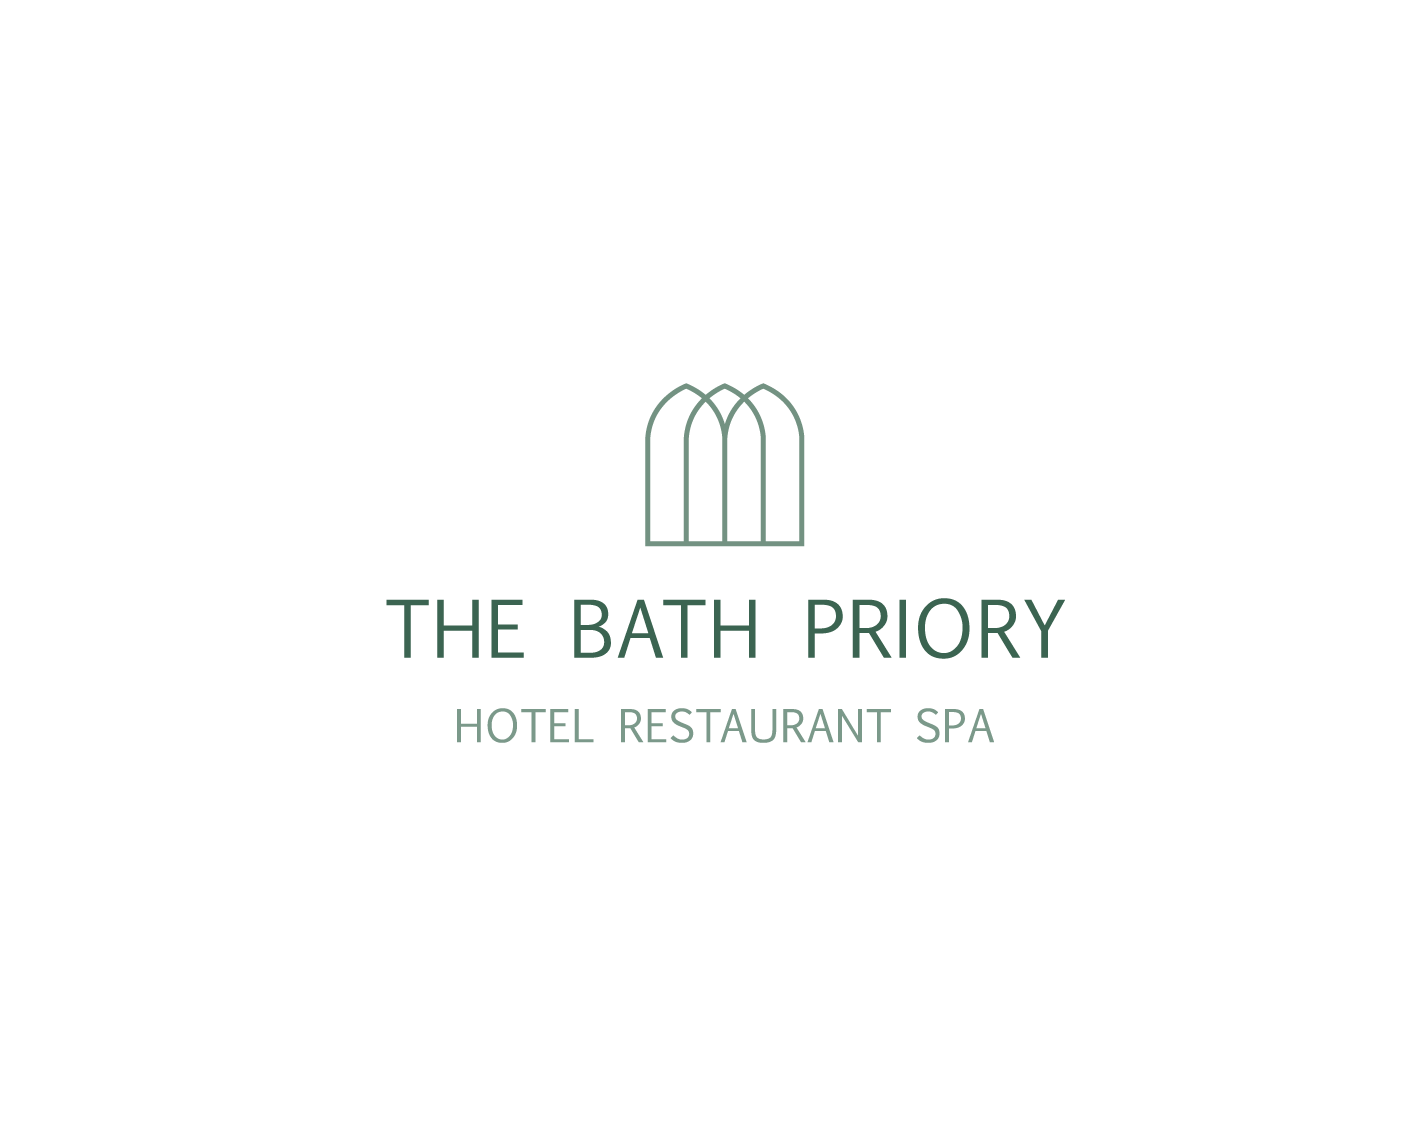 The Bath Priory logo